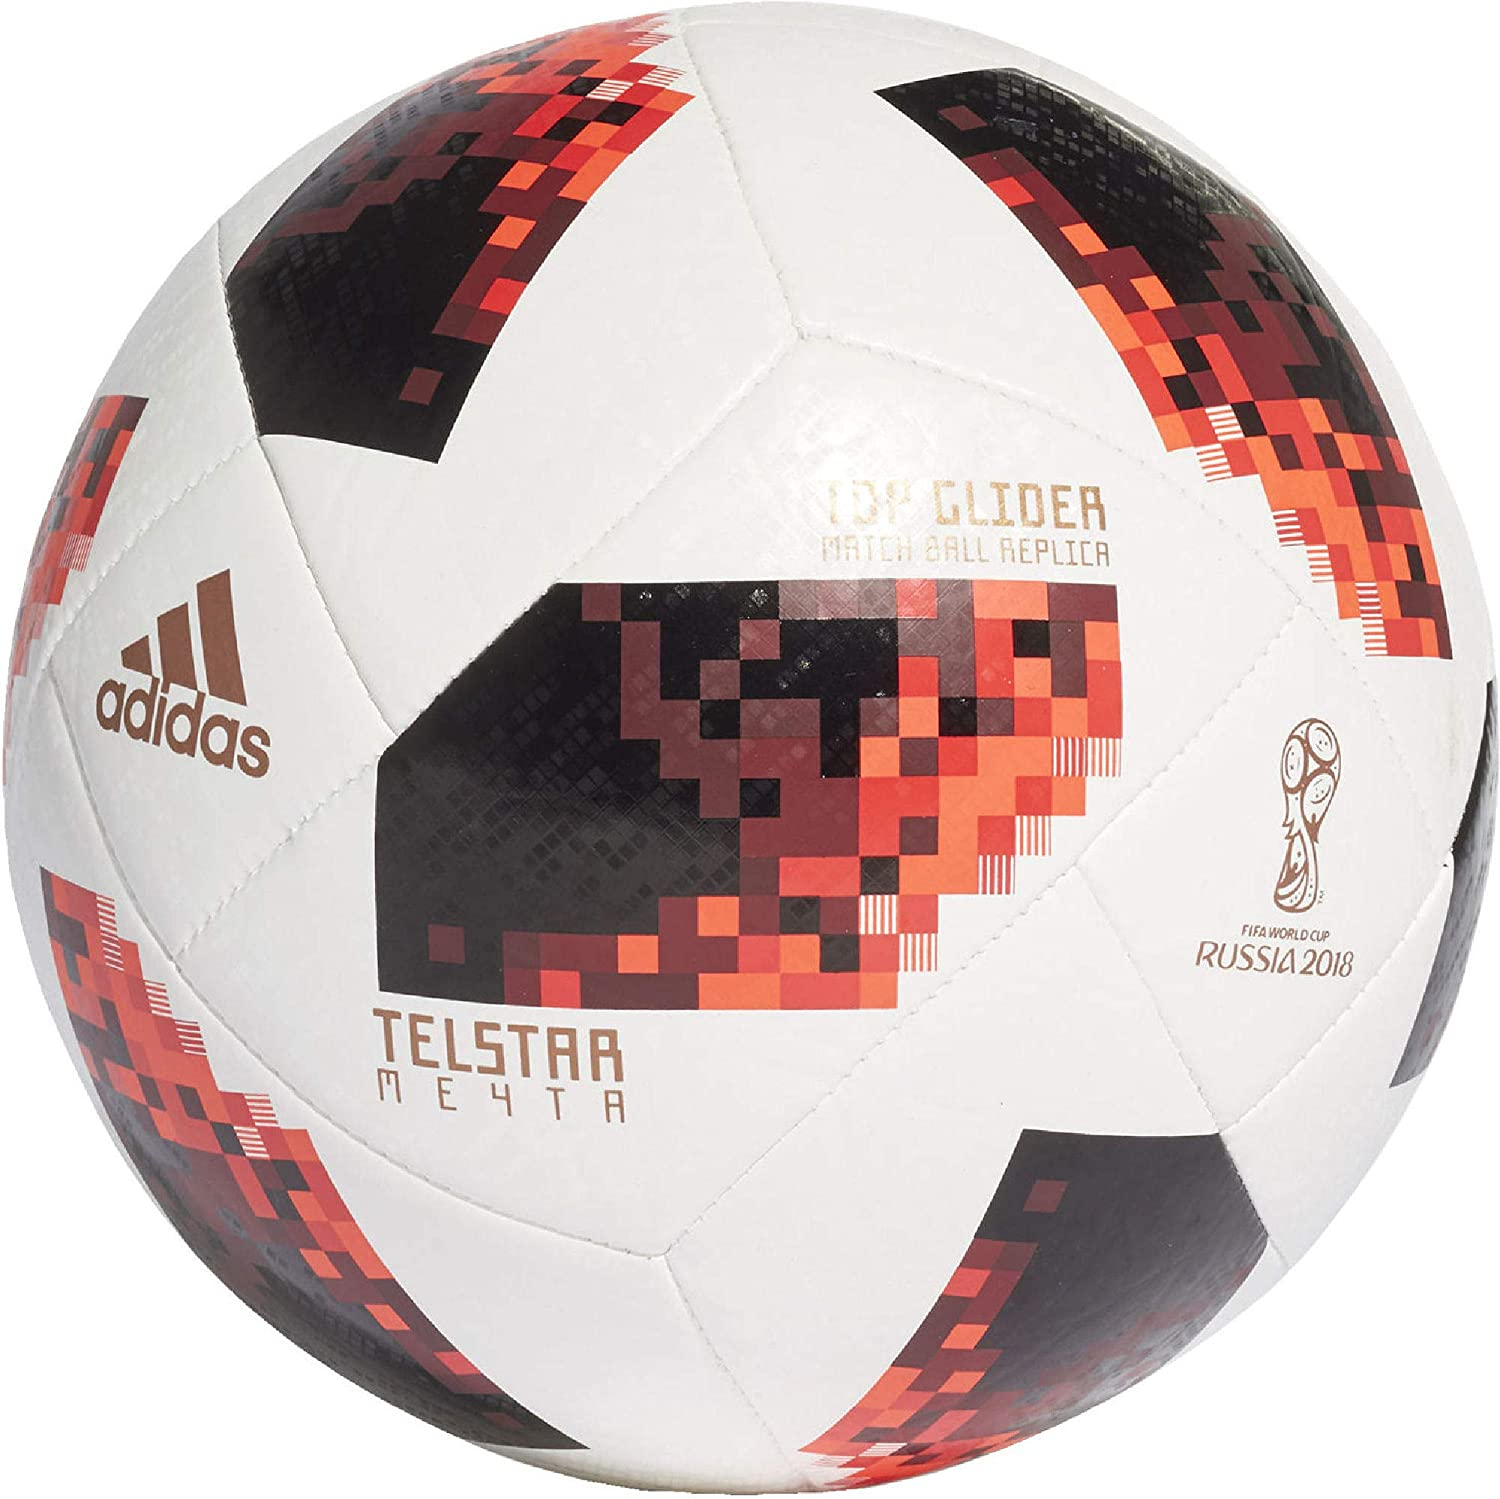 Adidas Men S Fifa Fussball Weltmeisterschaft Knockout Top Glider Ball Football Amazon Co Uk Sports Outdoors